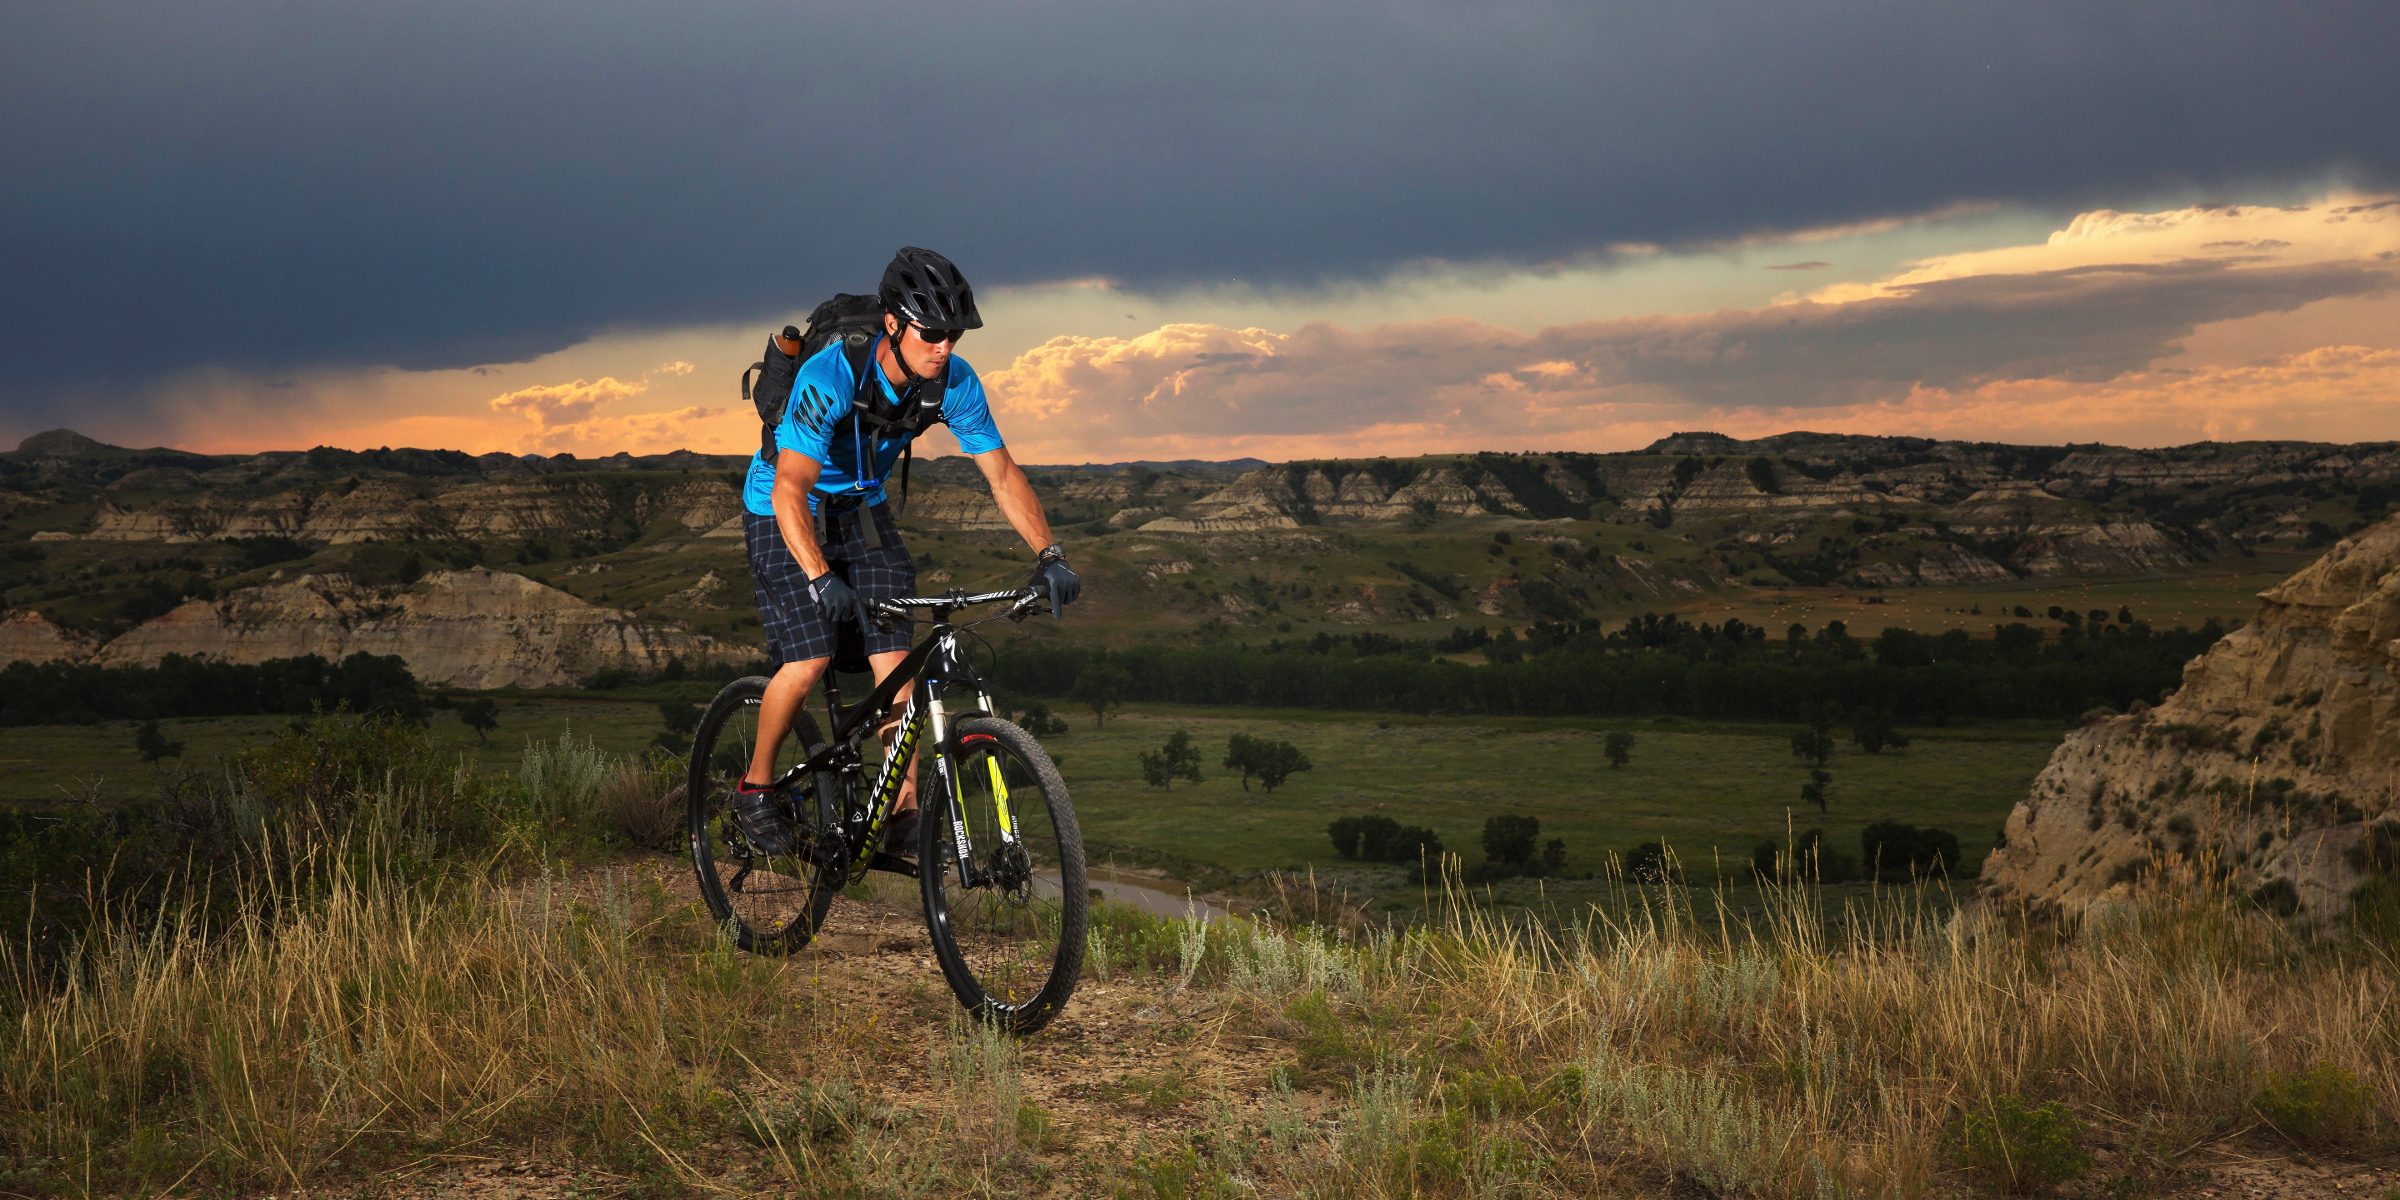 Mountain Biking in the Badlands